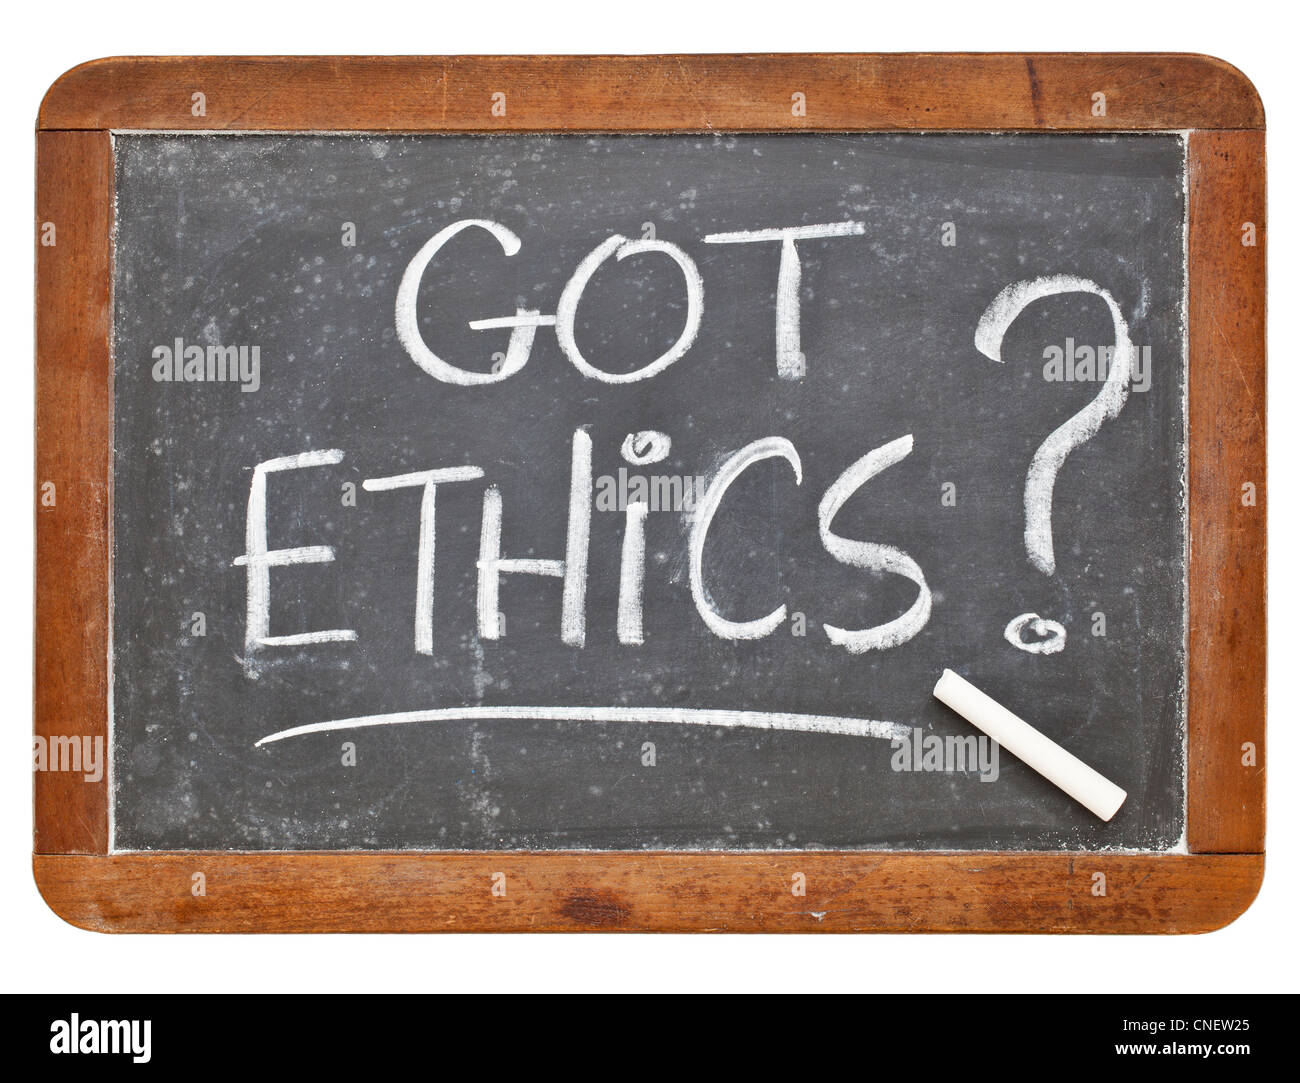 Got ethics question - white chalk handwriting on a vintage slate blackboard, isolated - Stock Image